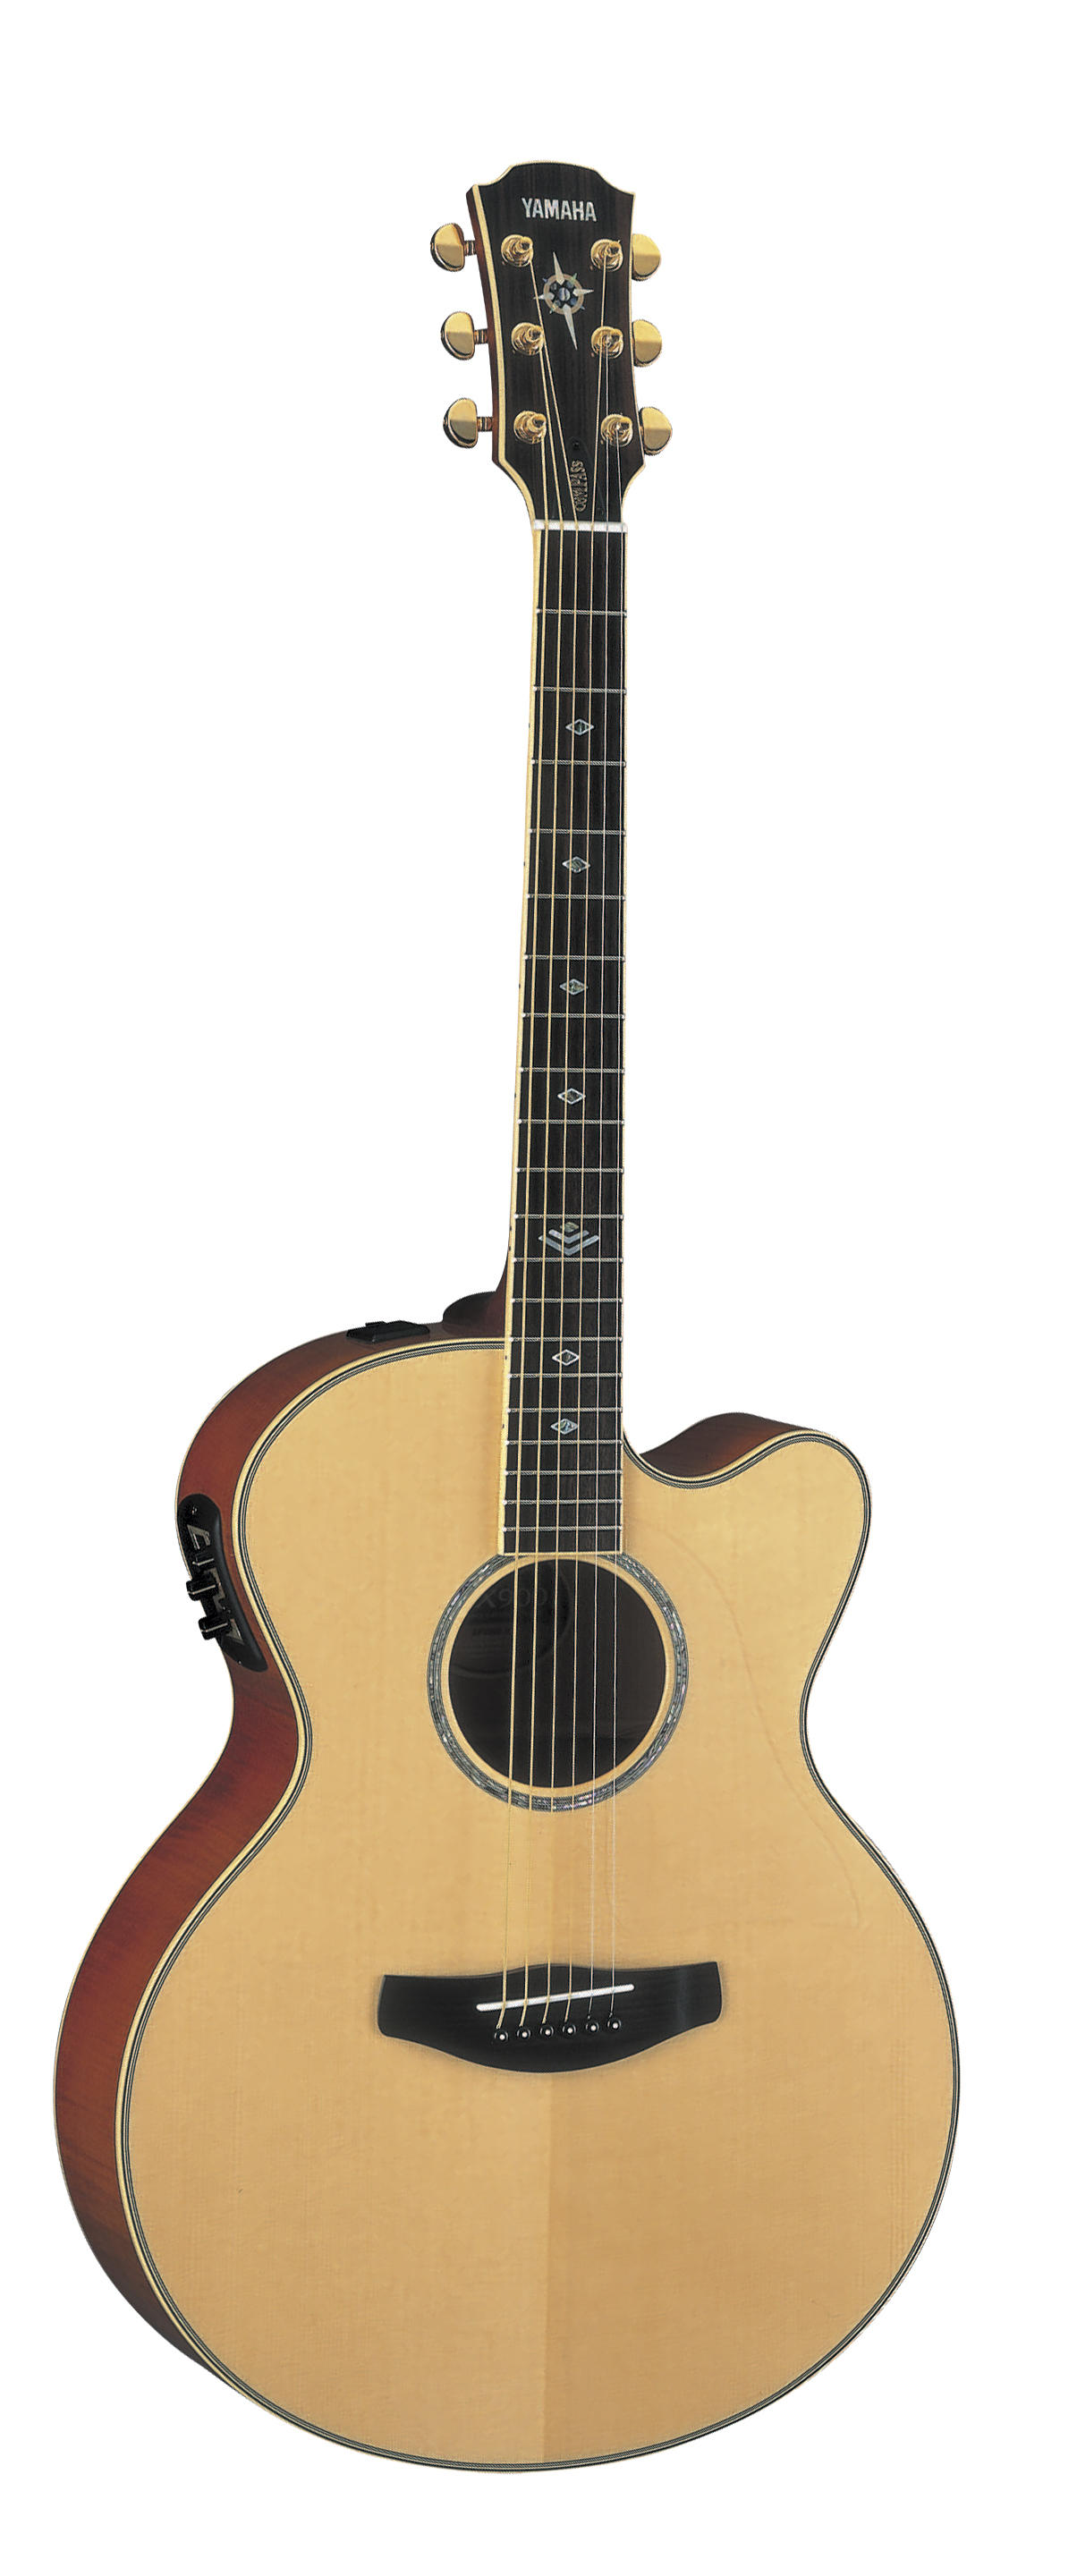 Yamaha Introduces CPX Series Acoustic-Electric Guitar Line